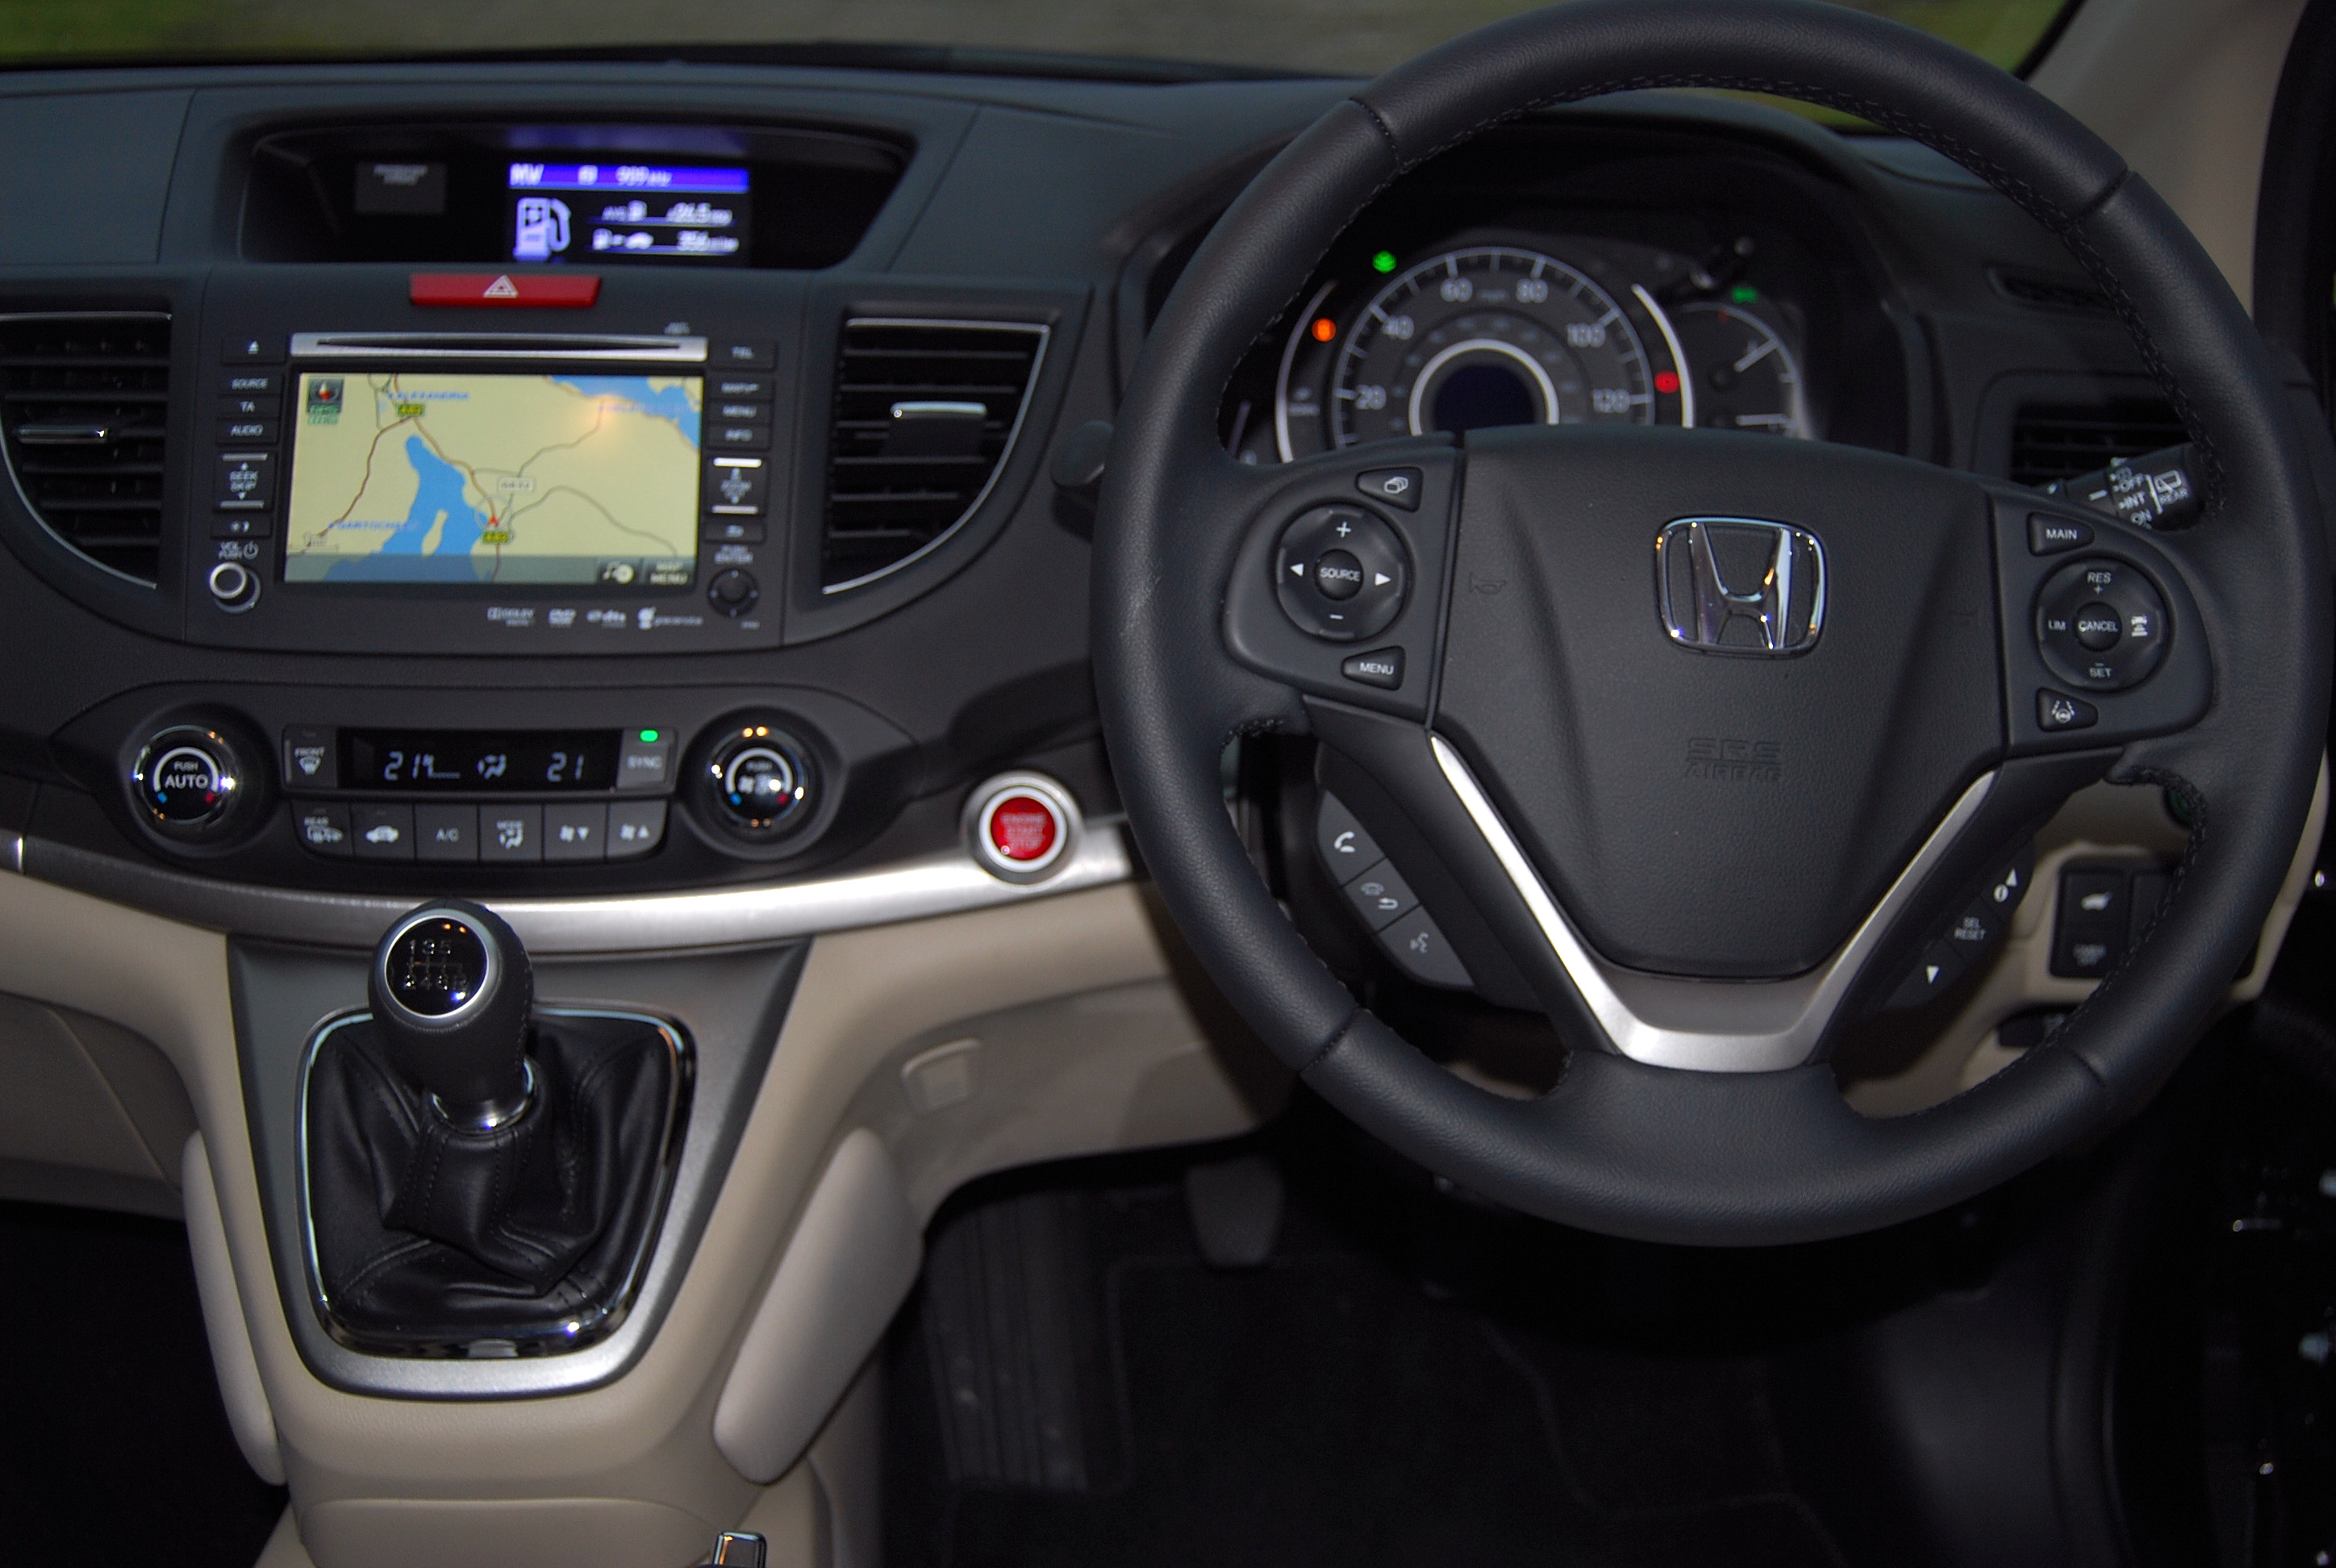 CR-V interior – well thought out and attractive